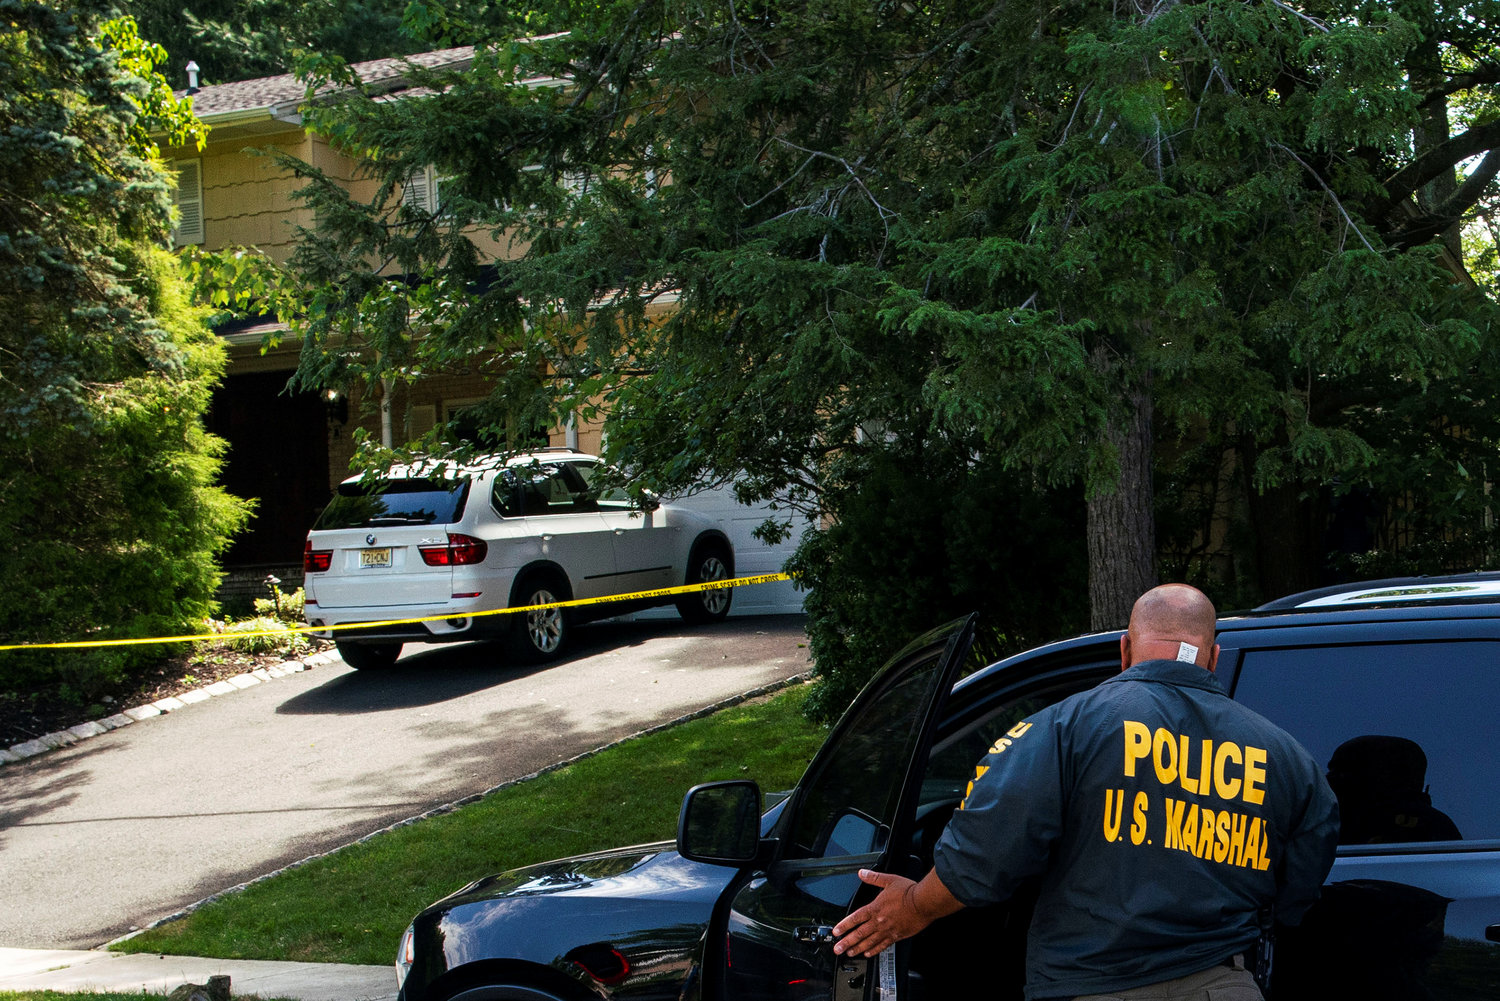 Law enforcement officials in North Brunswick, N.J., are seen outside the home of federal Judge Esther Salas July 20, where her son was shot and killed and her husband was critically injured the day before.